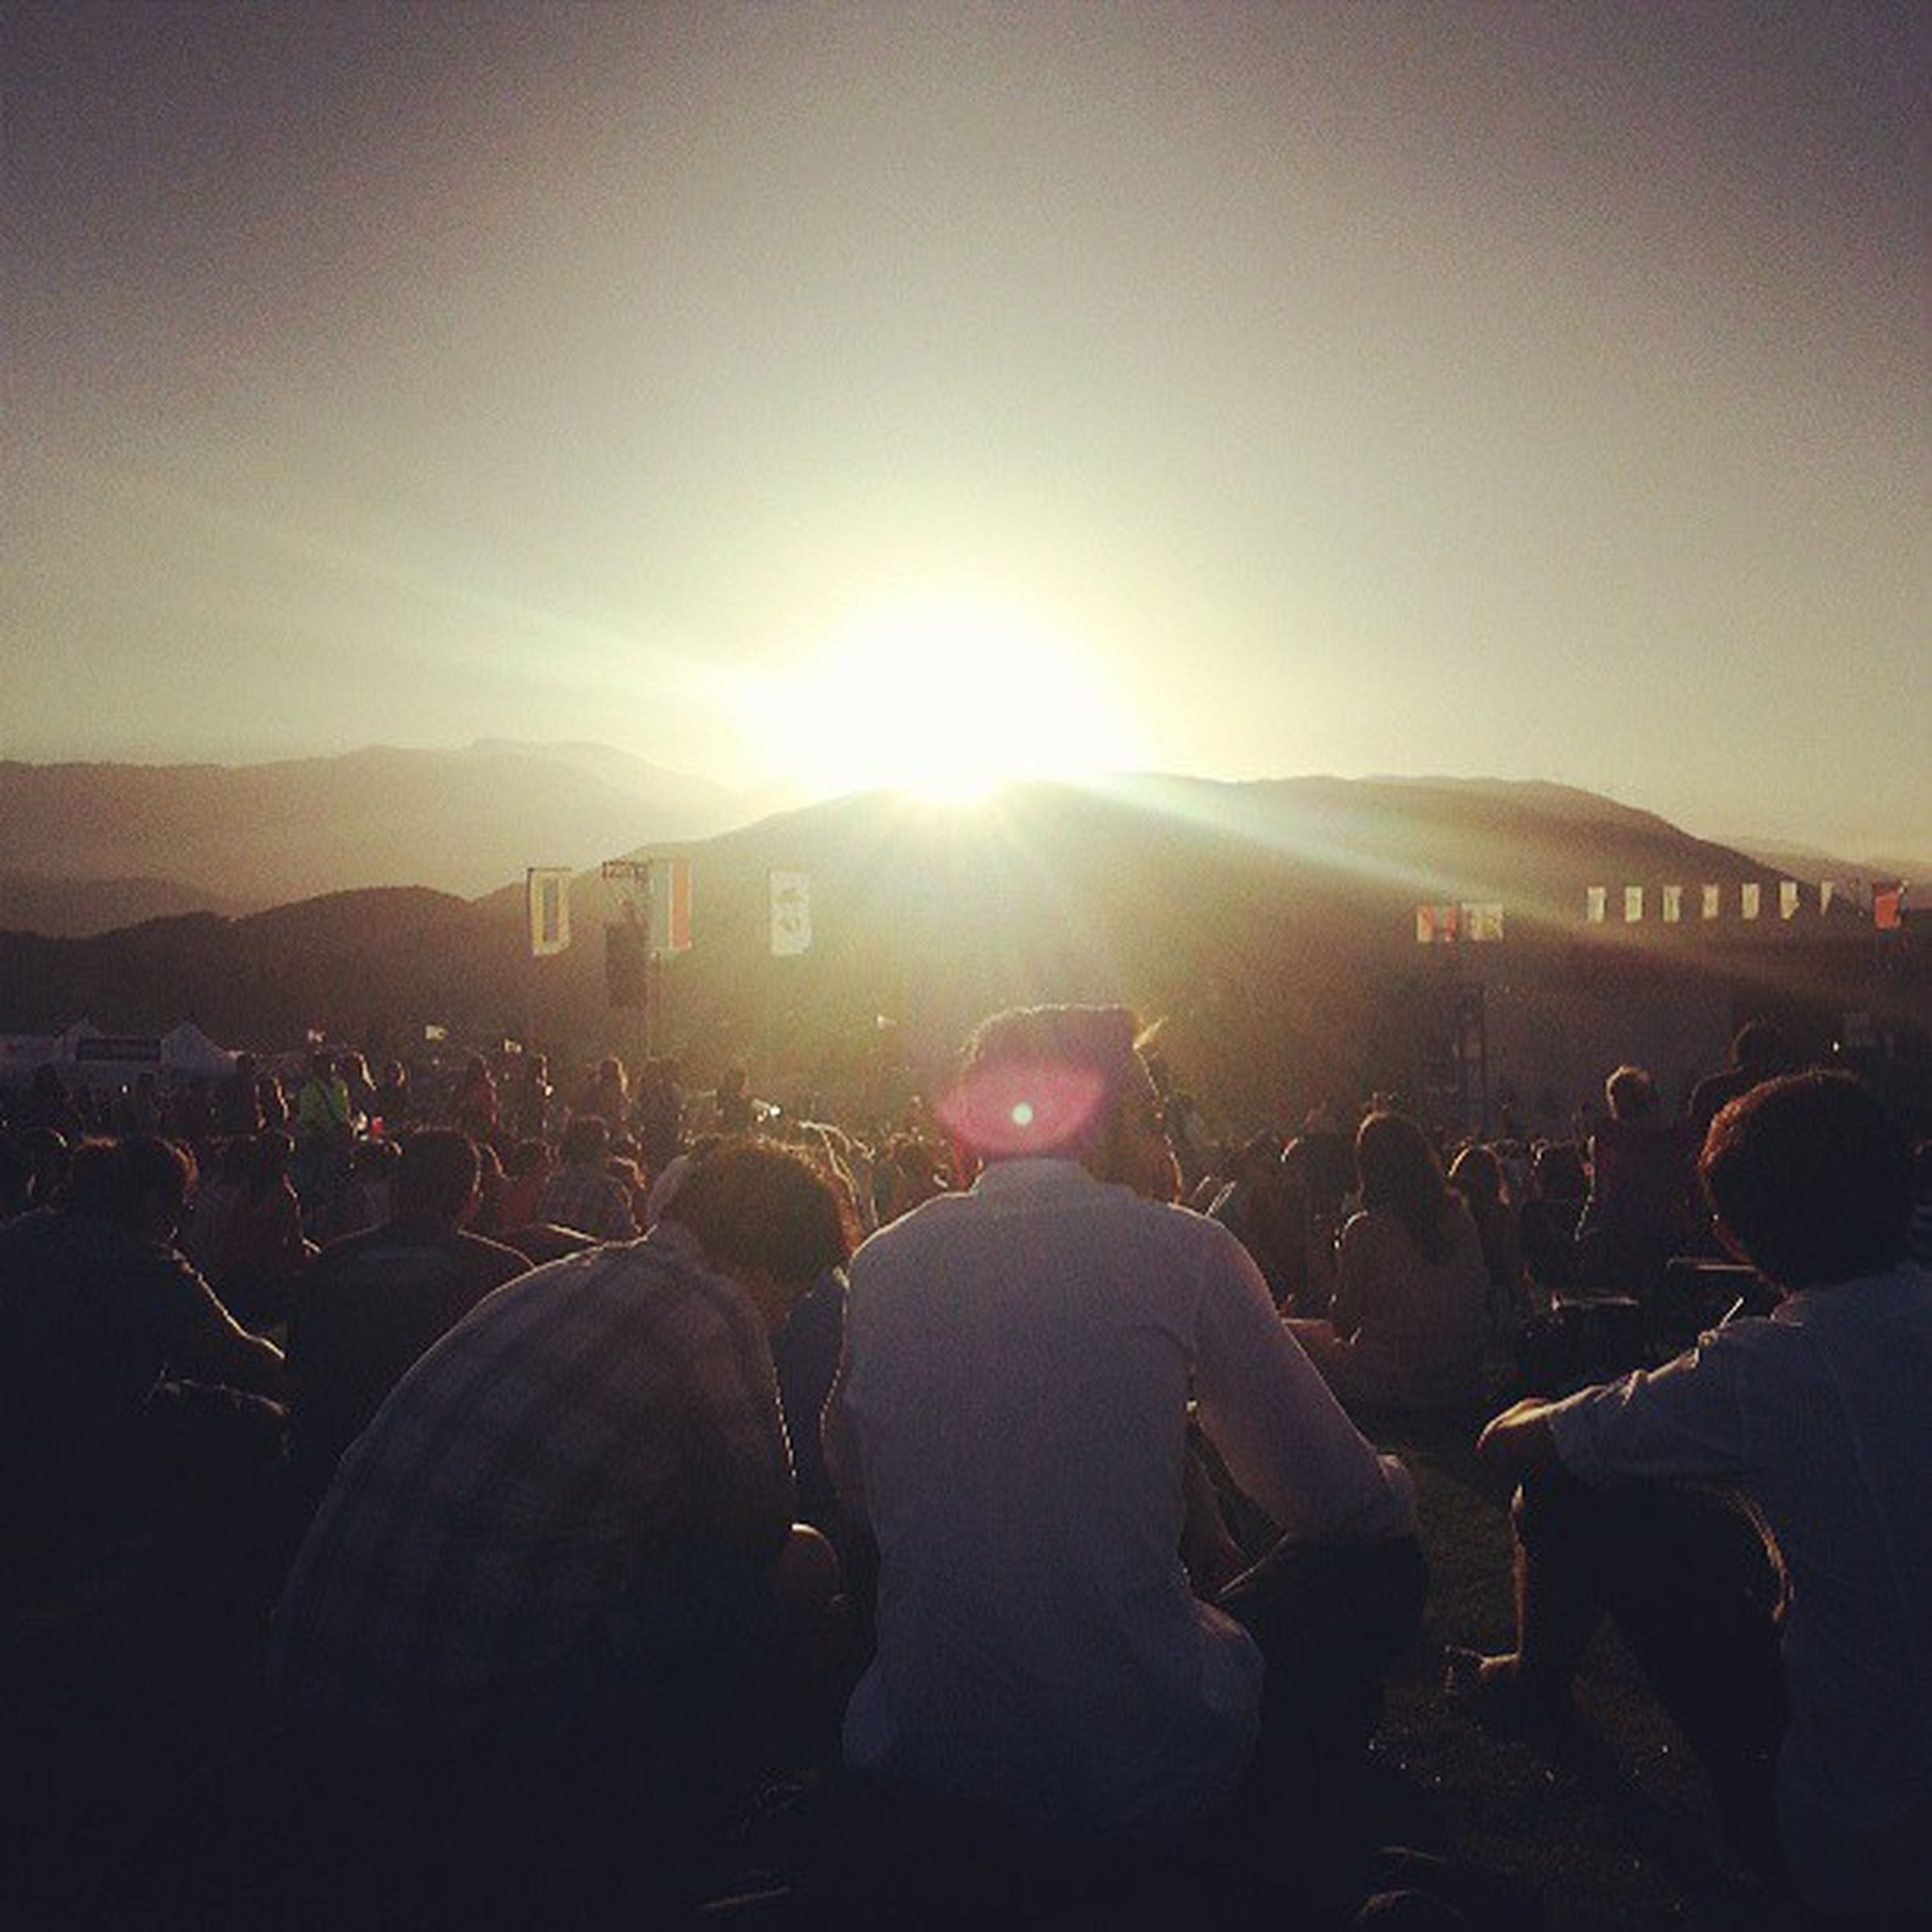 lifestyles, leisure activity, men, large group of people, sun, sunset, person, lens flare, sky, crowd, sunbeam, clear sky, rear view, sunlight, togetherness, city, silhouette, standing